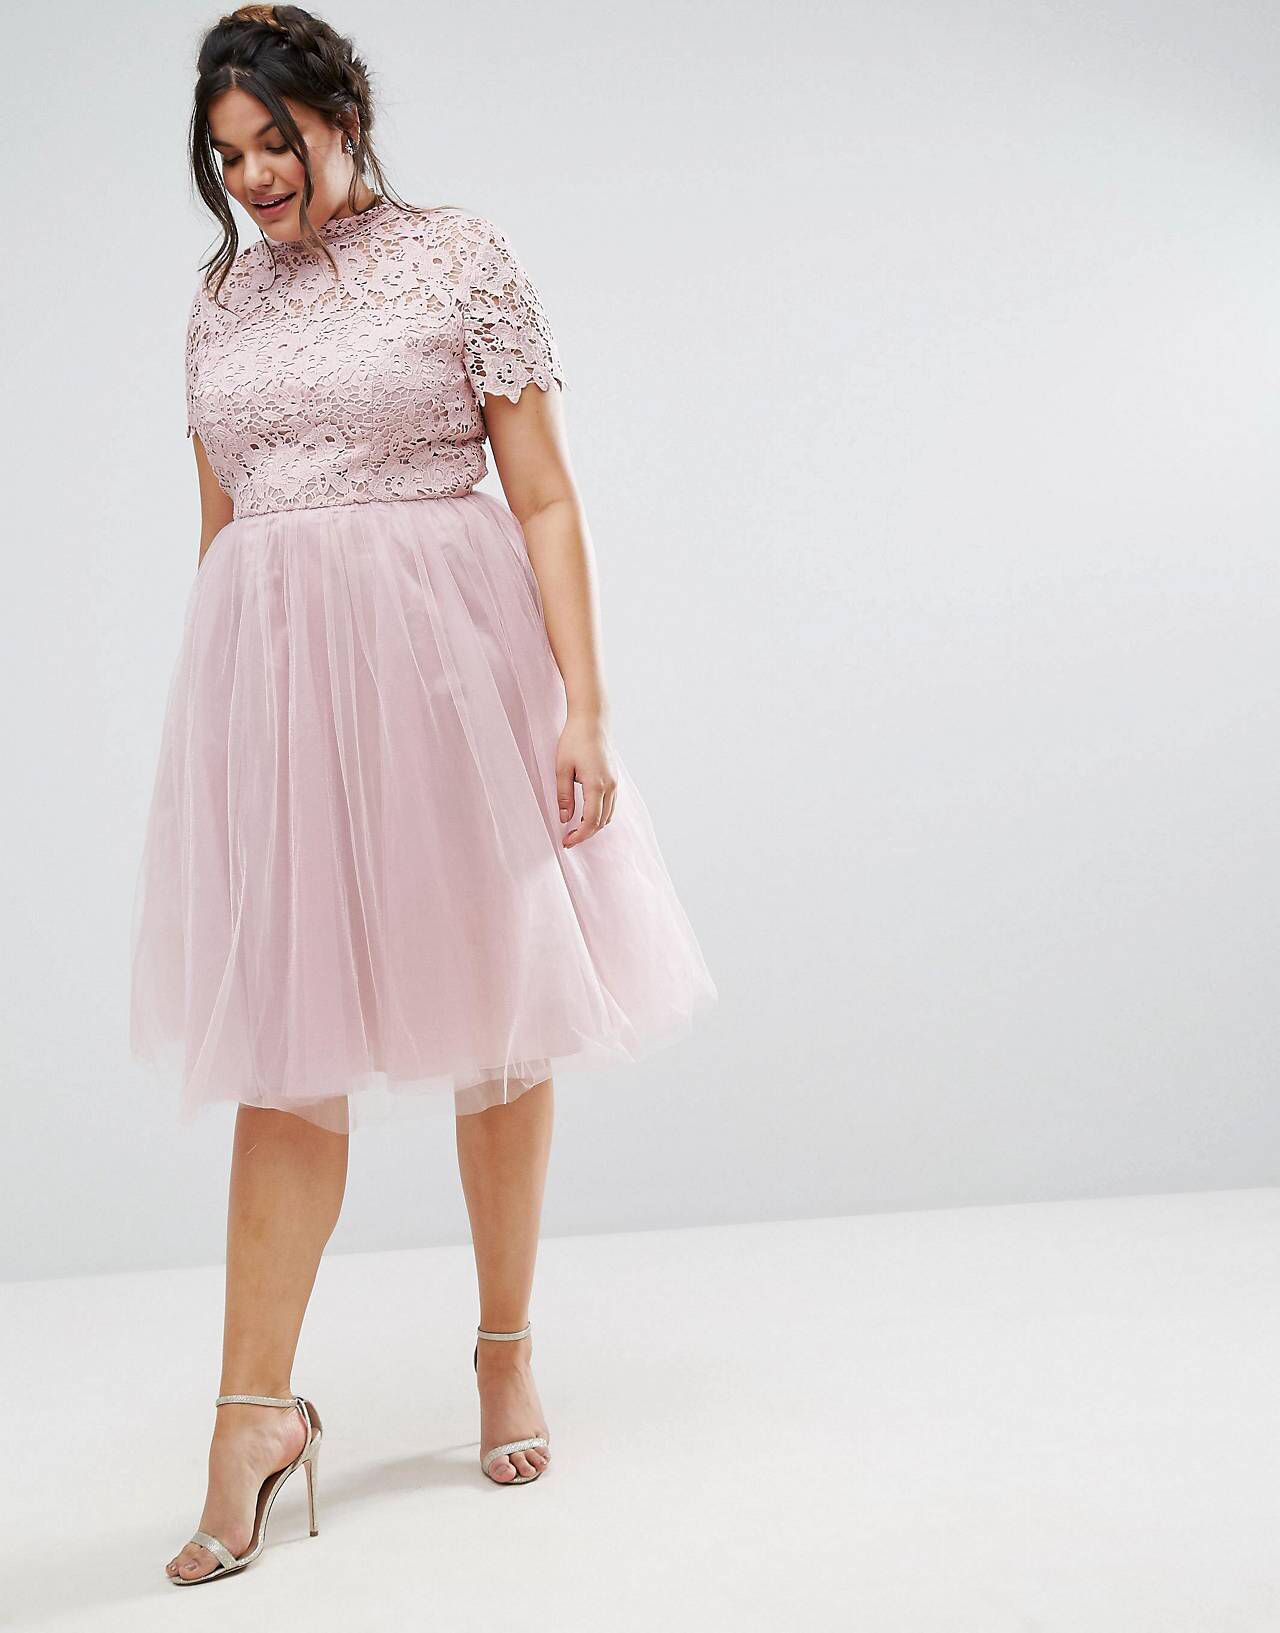 Love This From Asos Plus Size Wedding Guest Dresses Blush Pink Dress Outfit Pink Dress Outfits [ 1633 x 1280 Pixel ]